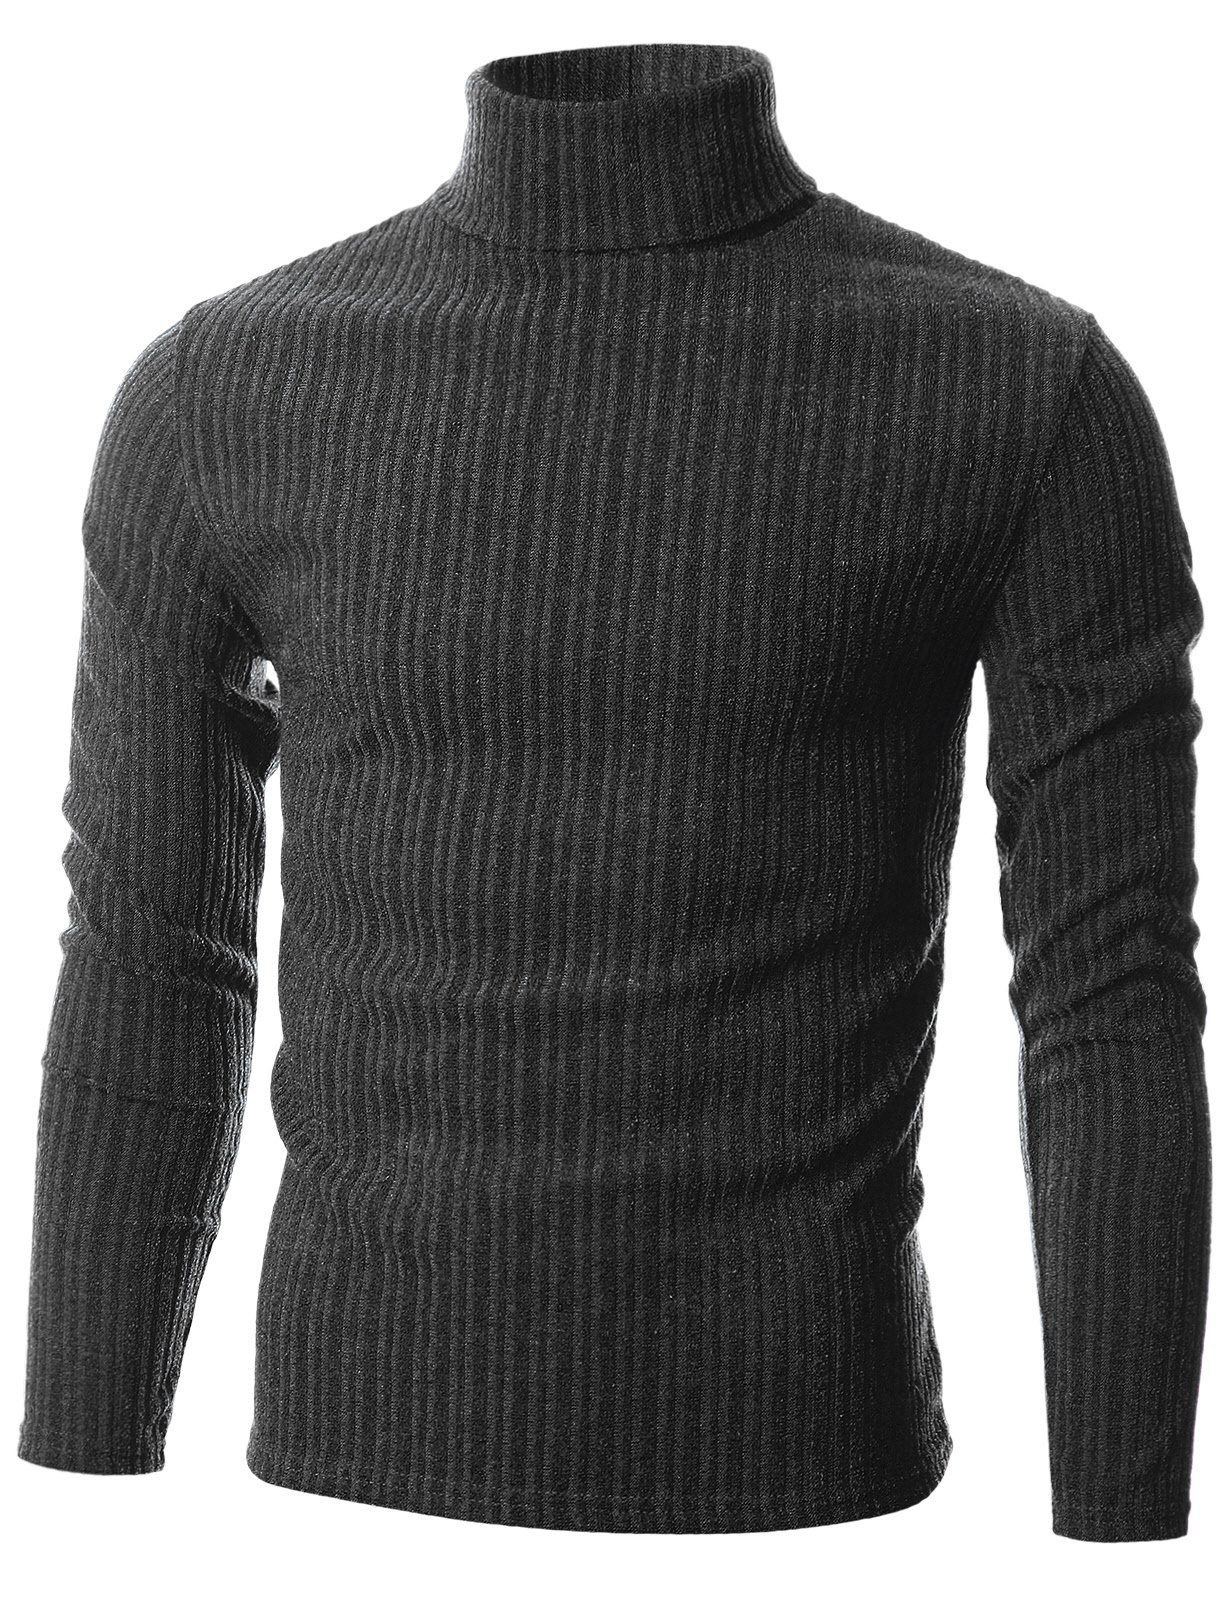 GIVON Mens Slim Fit Wide Ribbed Cotton Blend Turtleneck Pullover/DCP036-CHARCOAL-L by GIVON (Image #1)